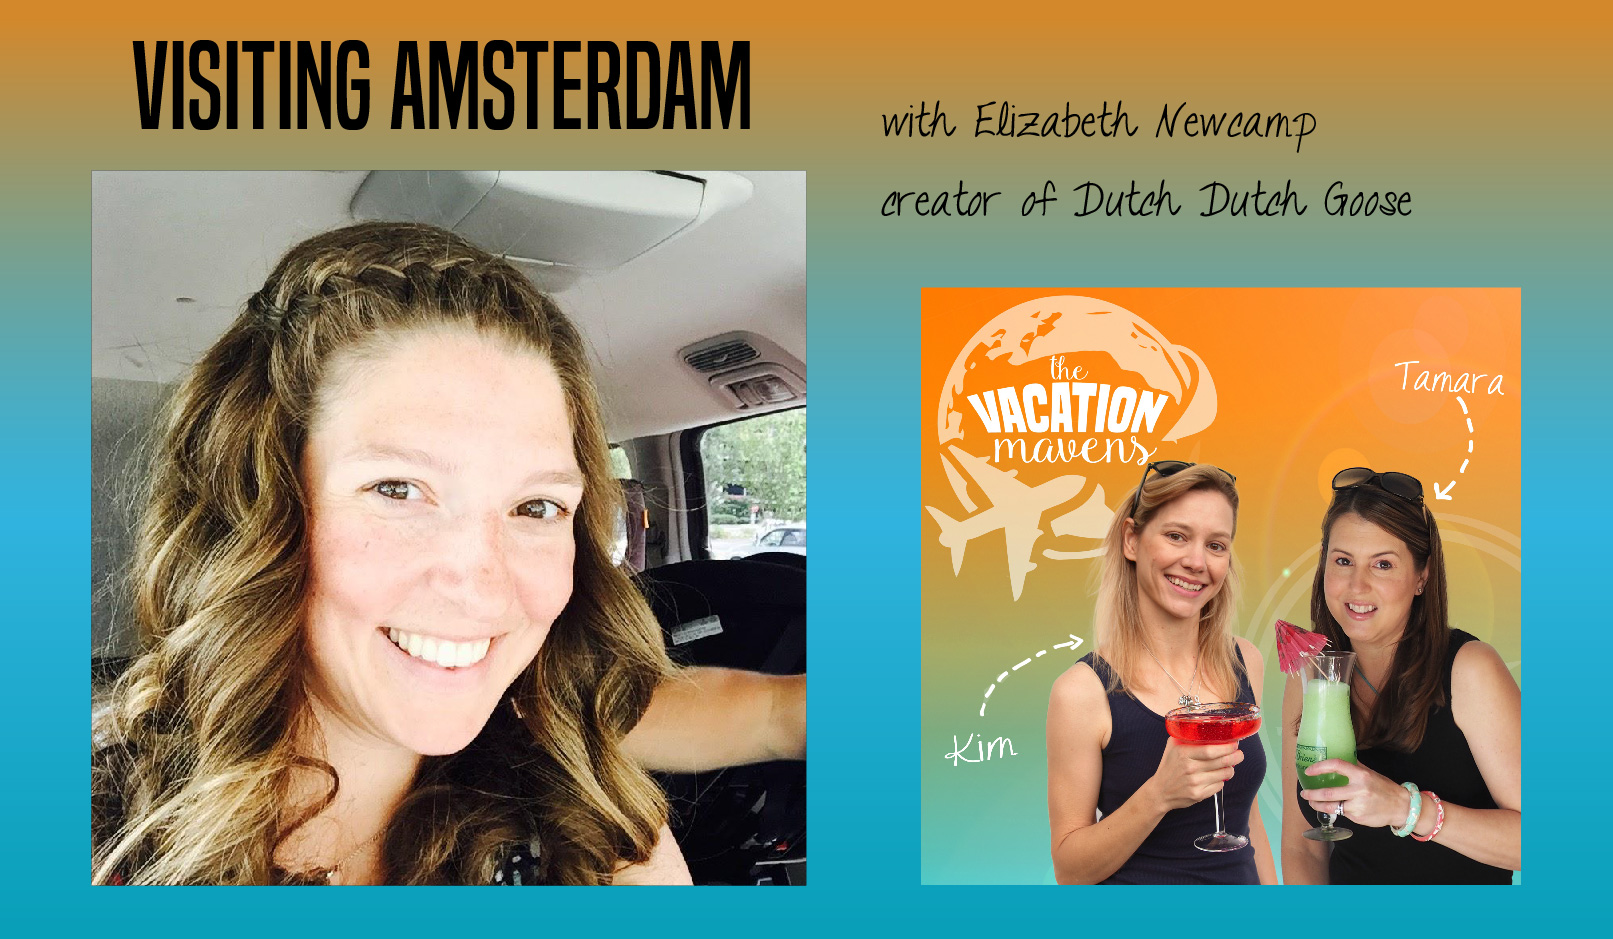 Amsterdam with kids with Elizabeth Newcamp from Dutch Dutch Goose